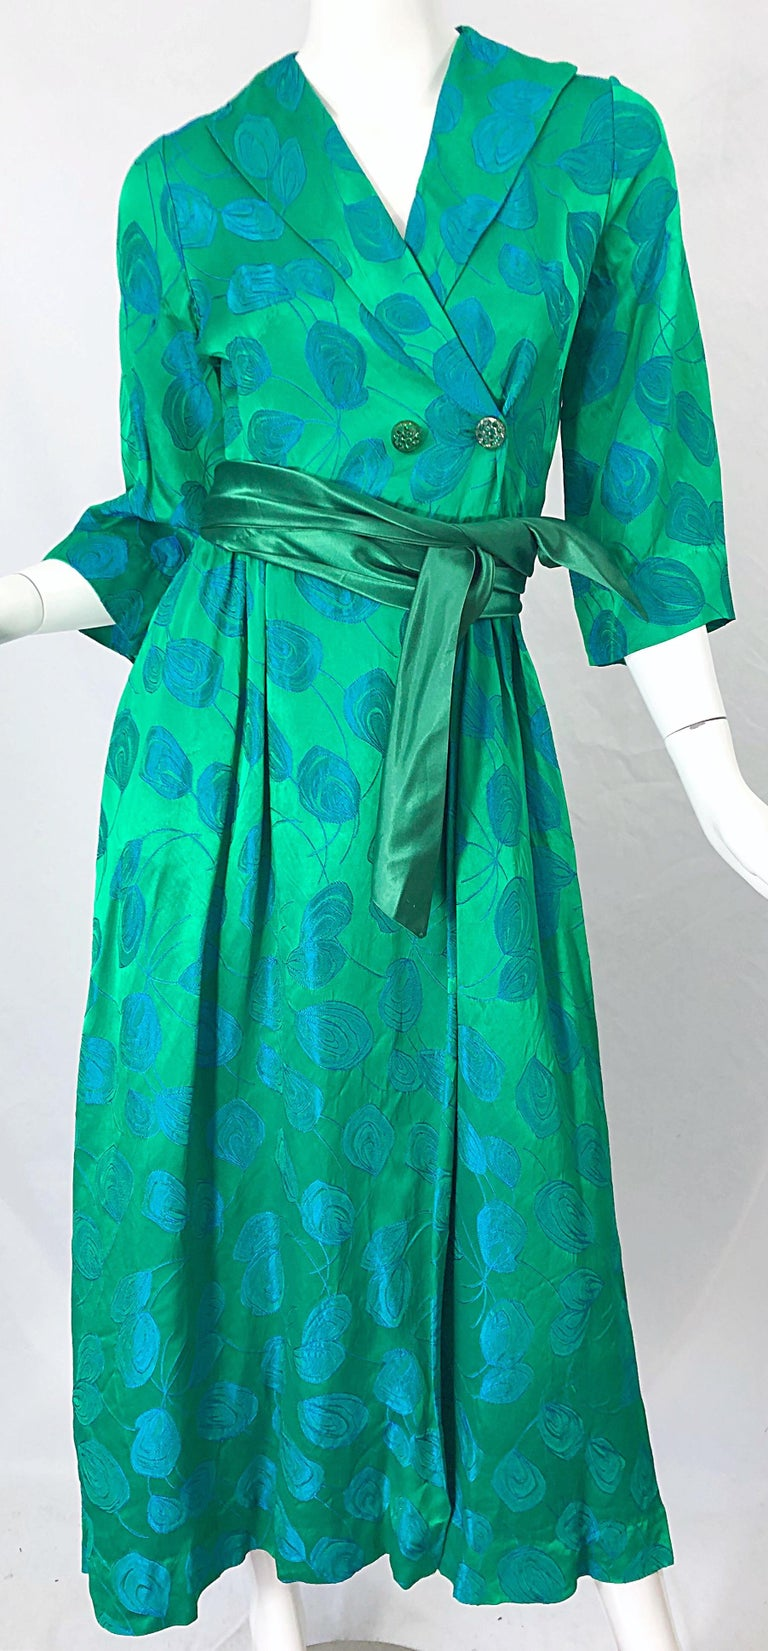 1950s Kelly Green + Blue Flower Print Rayon Rhinestone Vintage 50s Wrap Dress For Sale 2